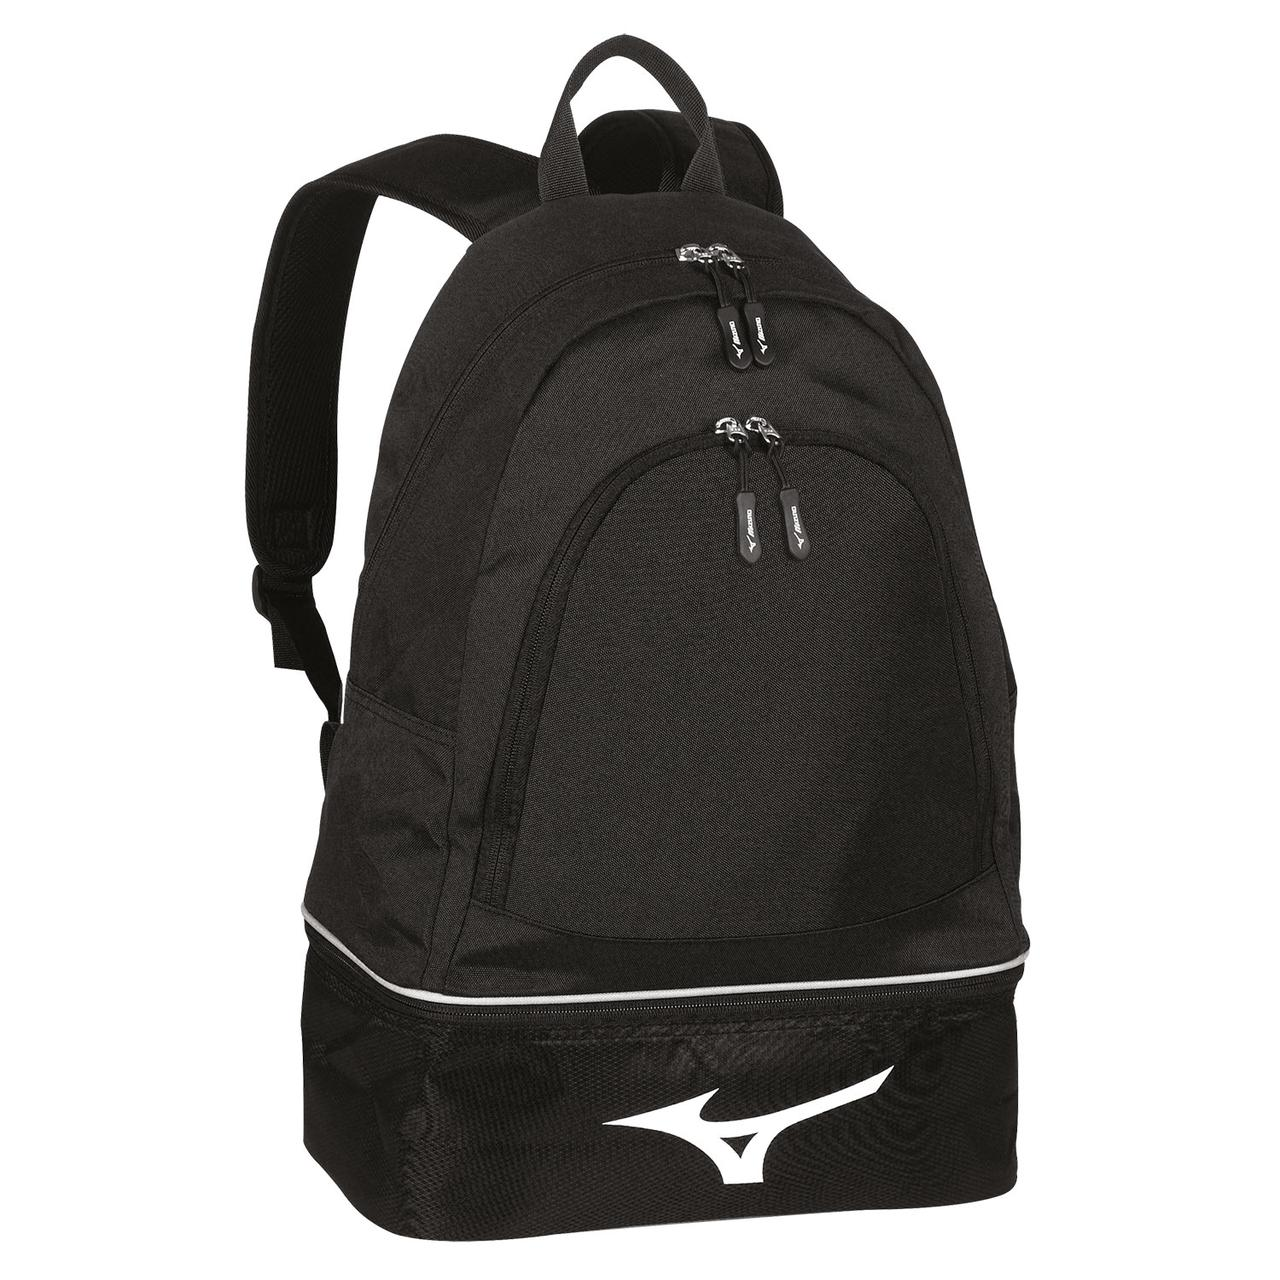 Рюкзак Mizuno Back Pack 33EY7W93-09